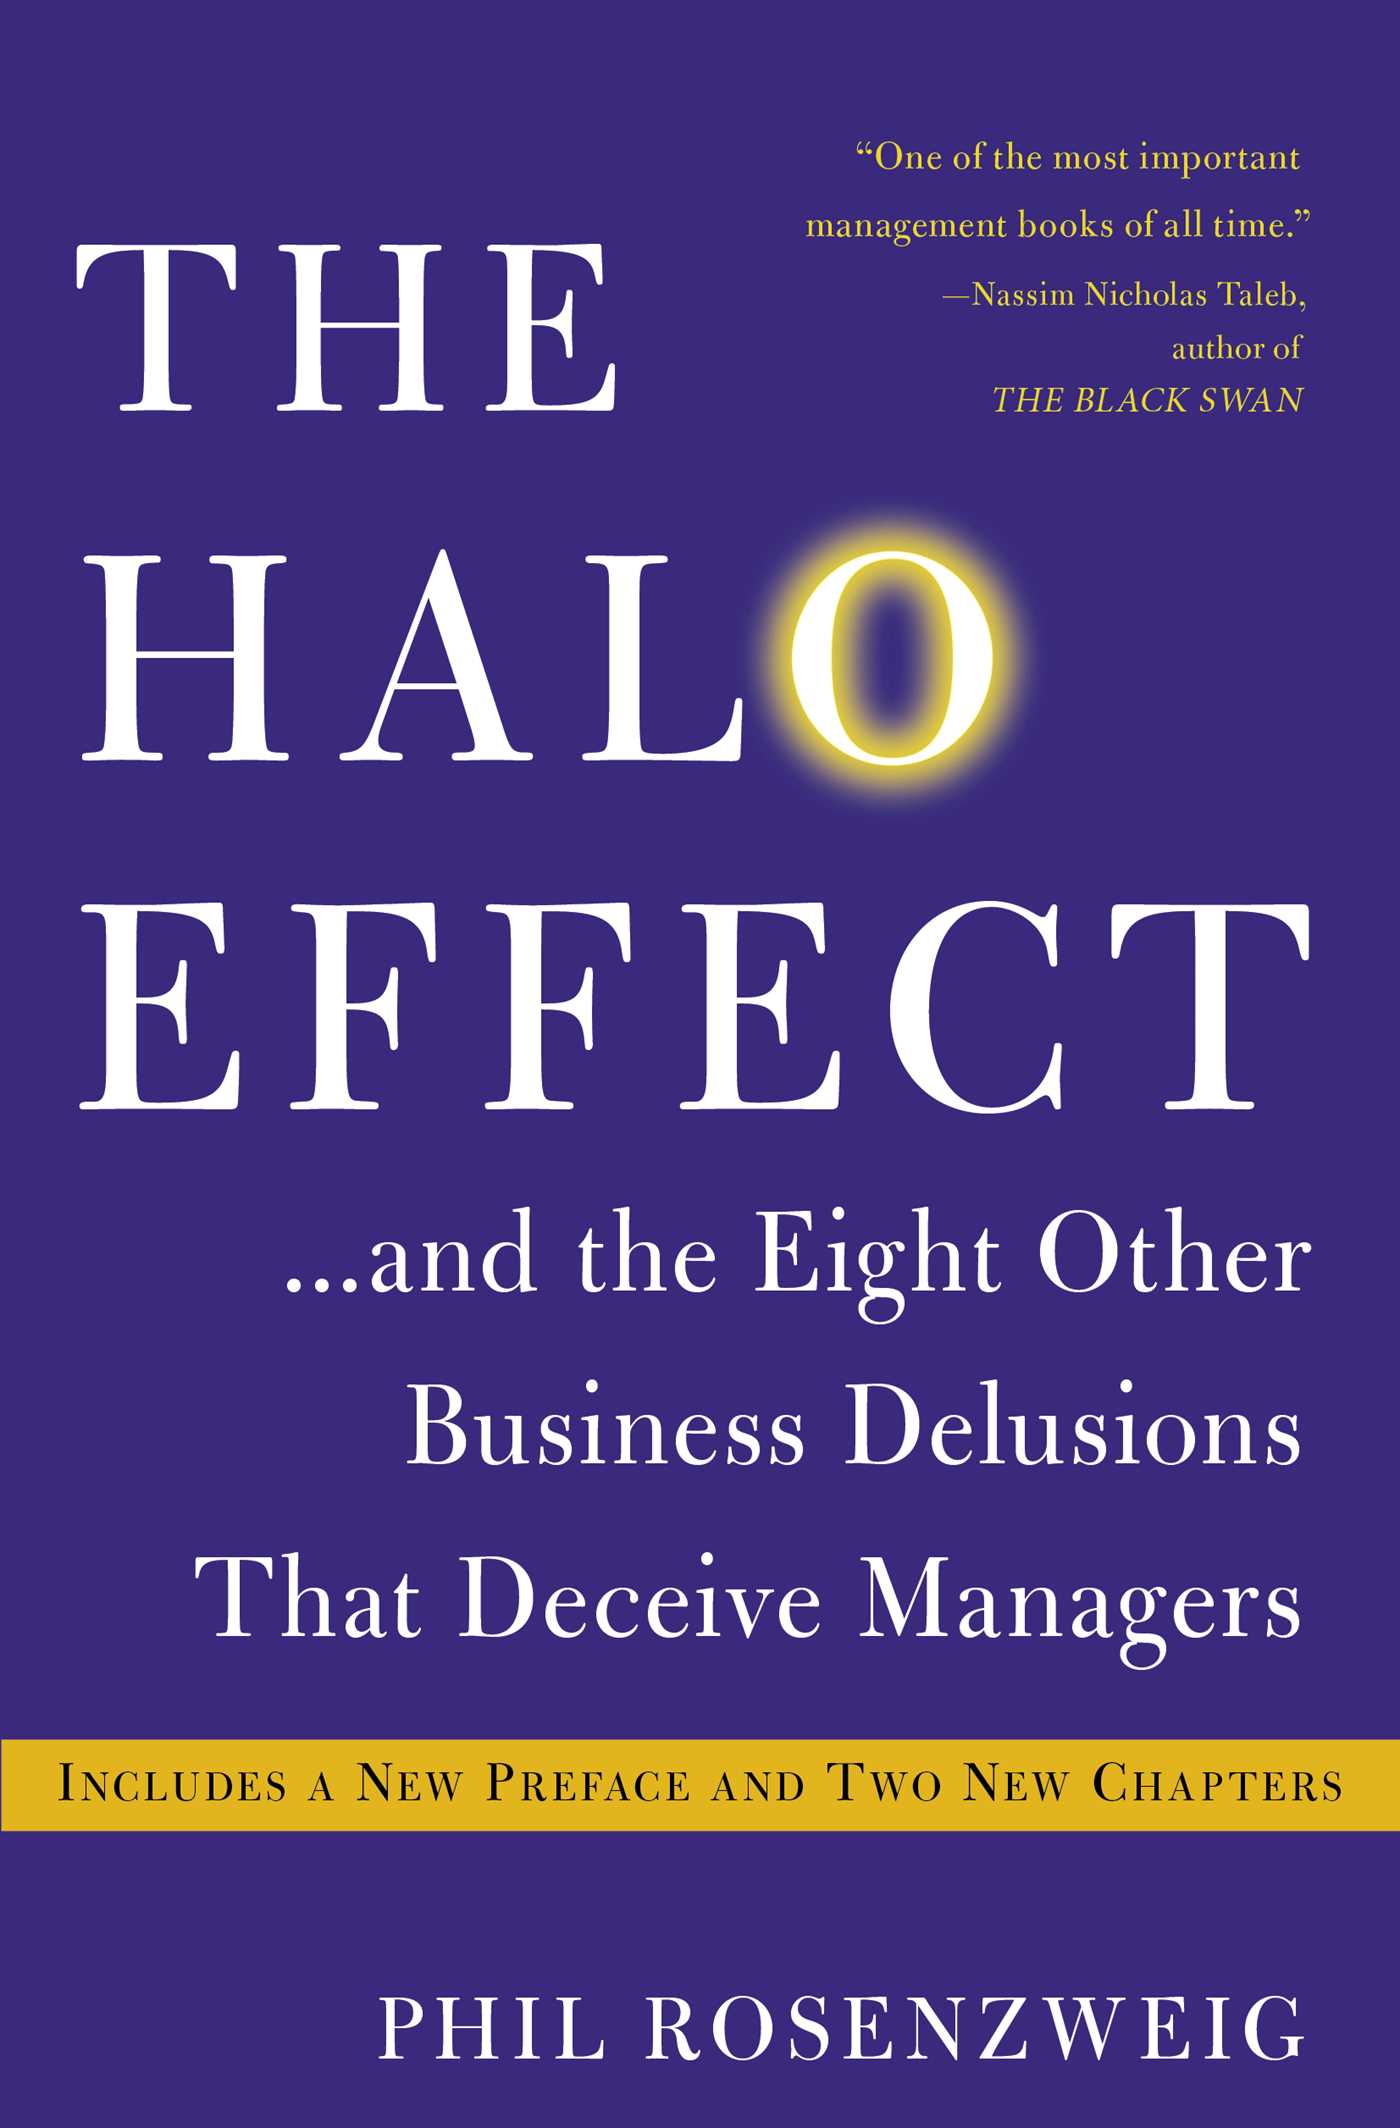 The Halo Effect | Book by Phil Rosenzweig | Official ...